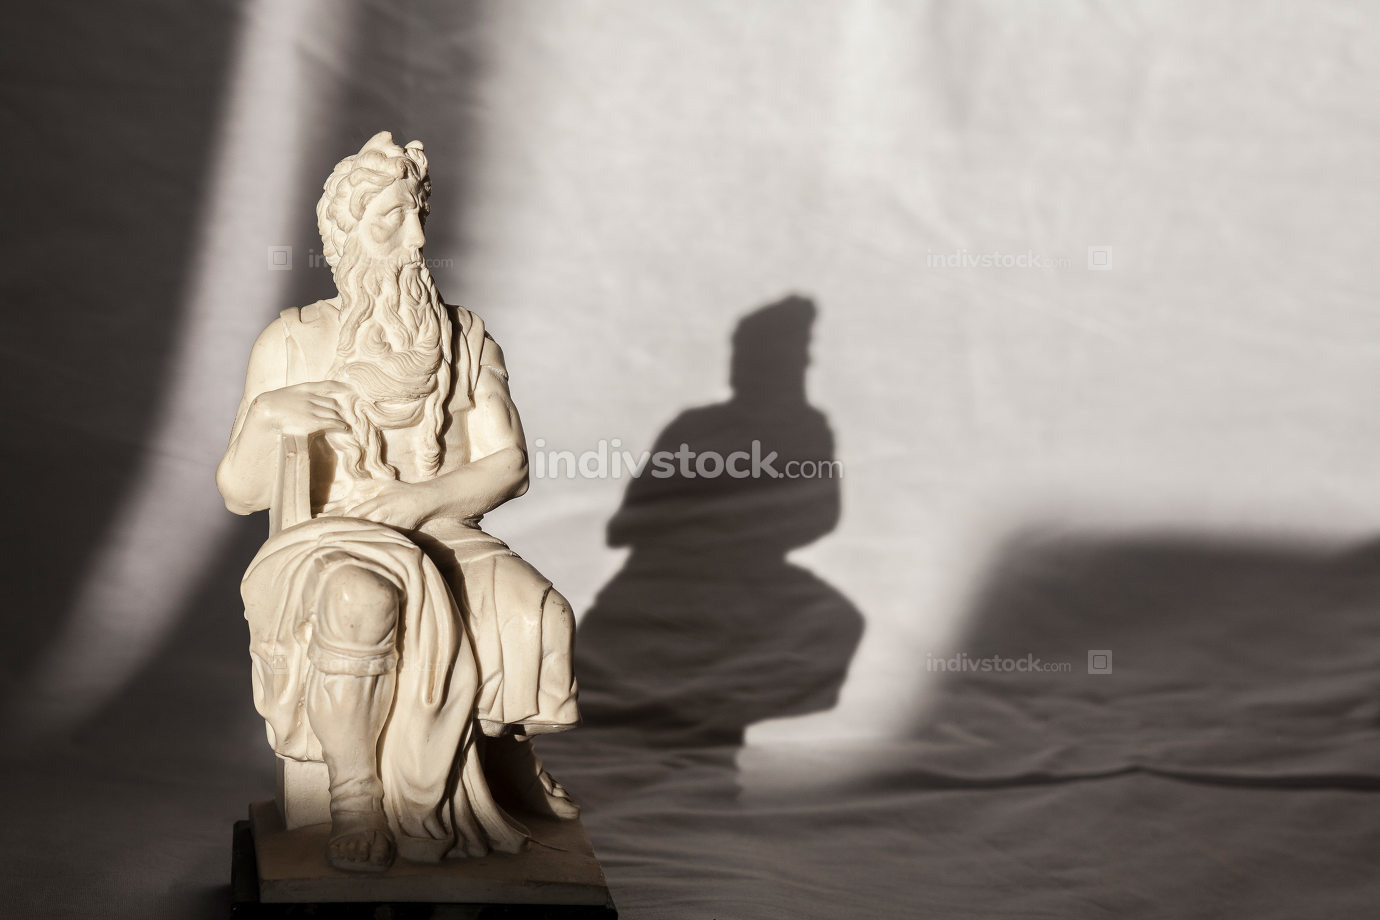 Michelangelo Moses sculpture, very popular as Rome souvenir